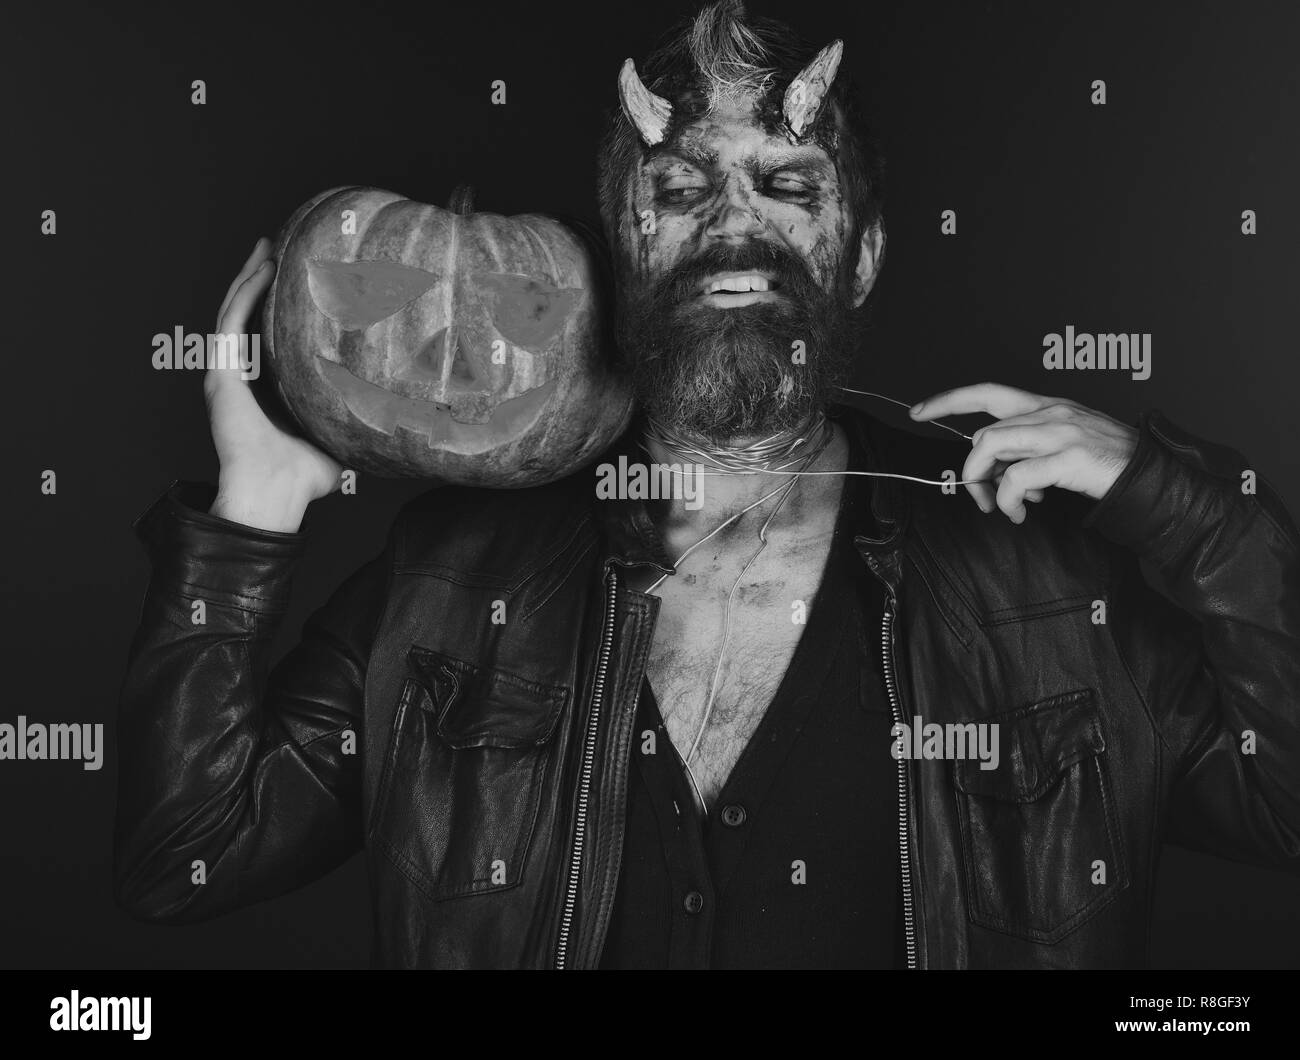 Demon with horns and tricky face holds carved jack o lantern. Man wearing scary makeup holds pumpkin on bloody red background. Halloween party concept. Devil or monster with October decorations - Stock Image